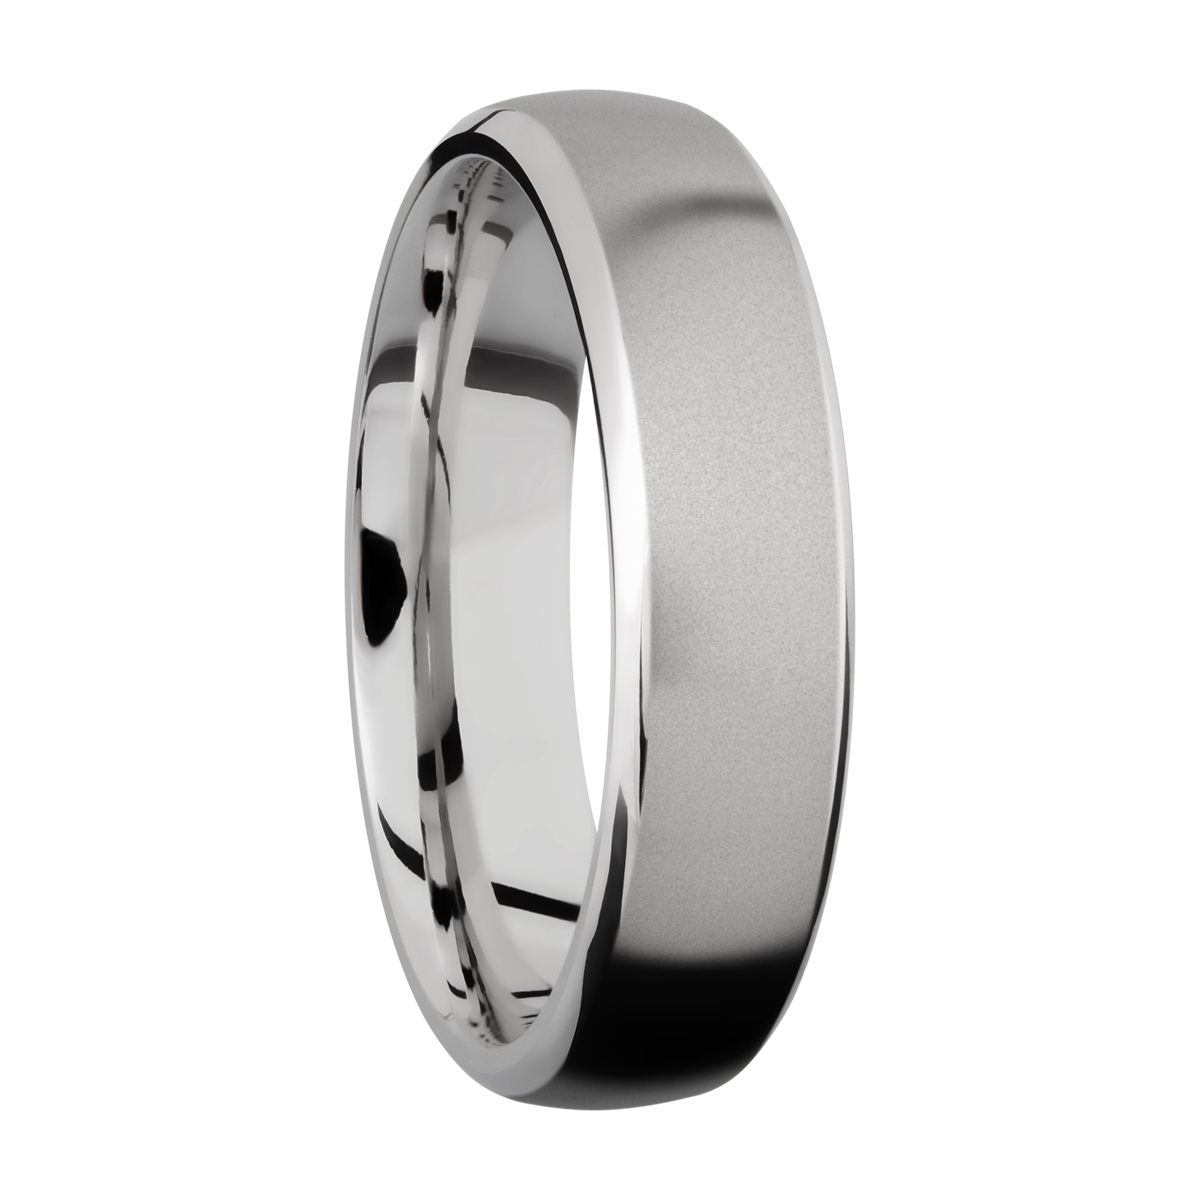 Lashbrook 6DB Titanium Wedding Ring or Band Alternative View 1